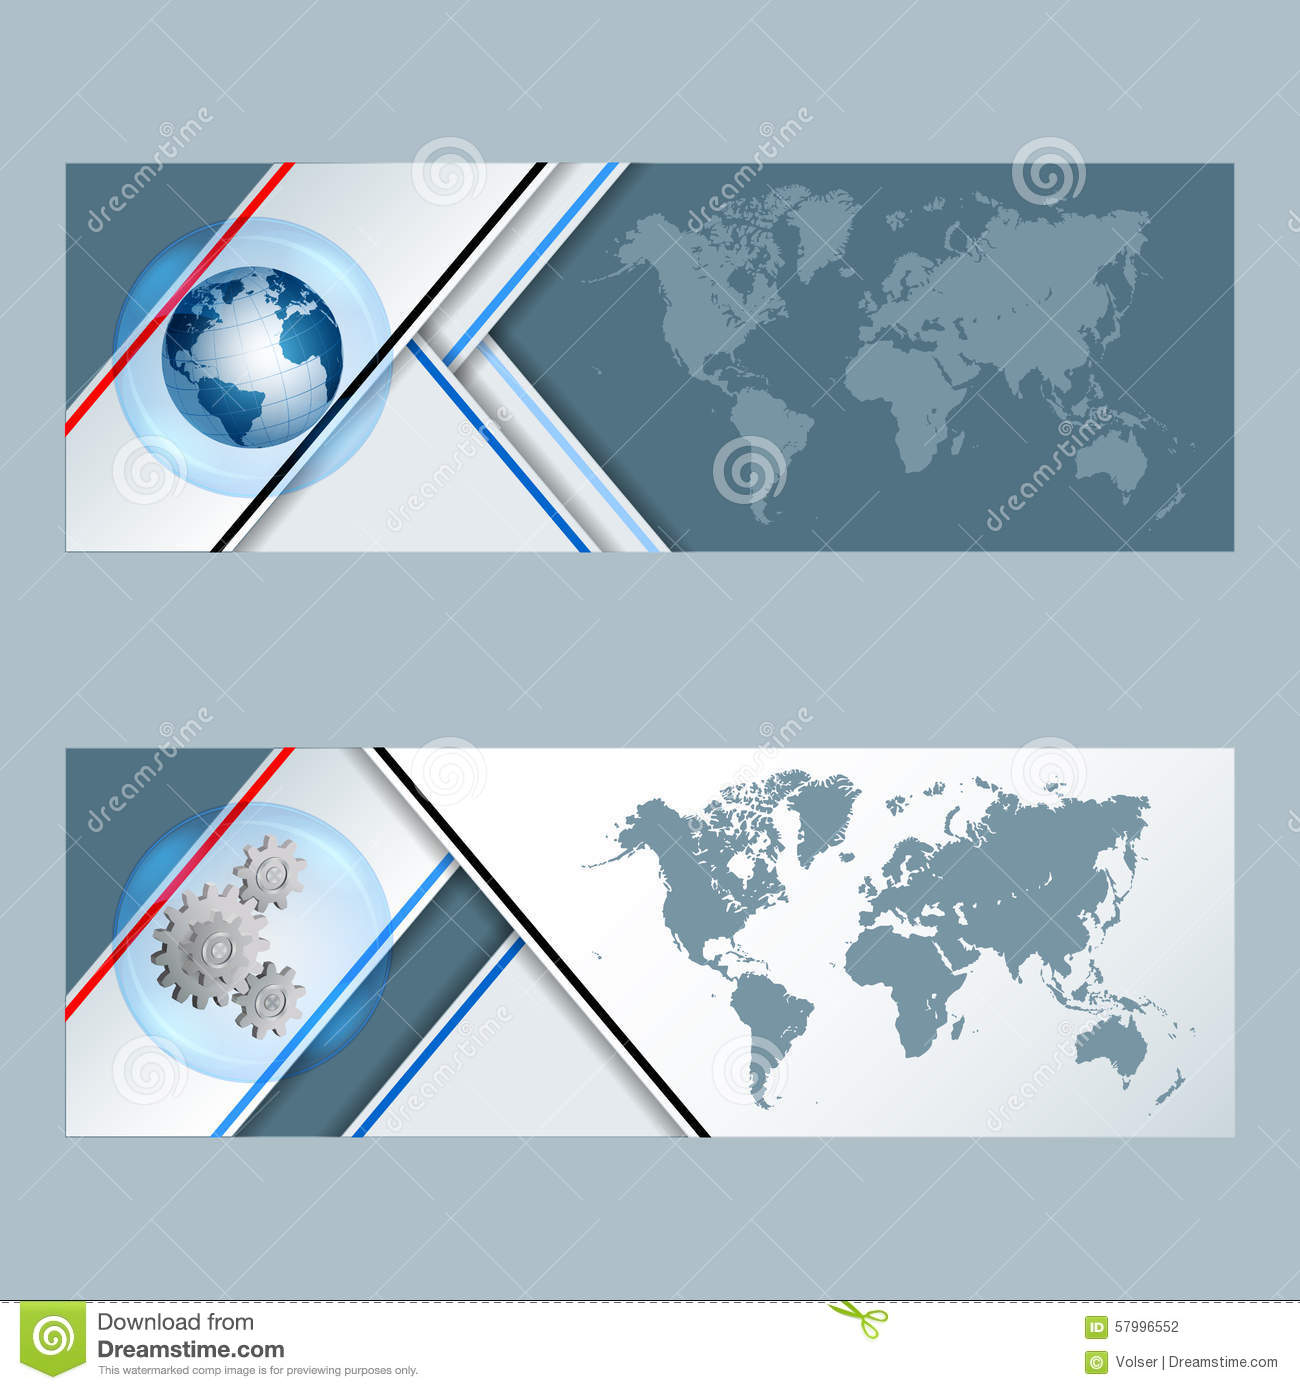 Map Design Website Template: Set Of Banners With Earth Globe, Cogwheels And World Map